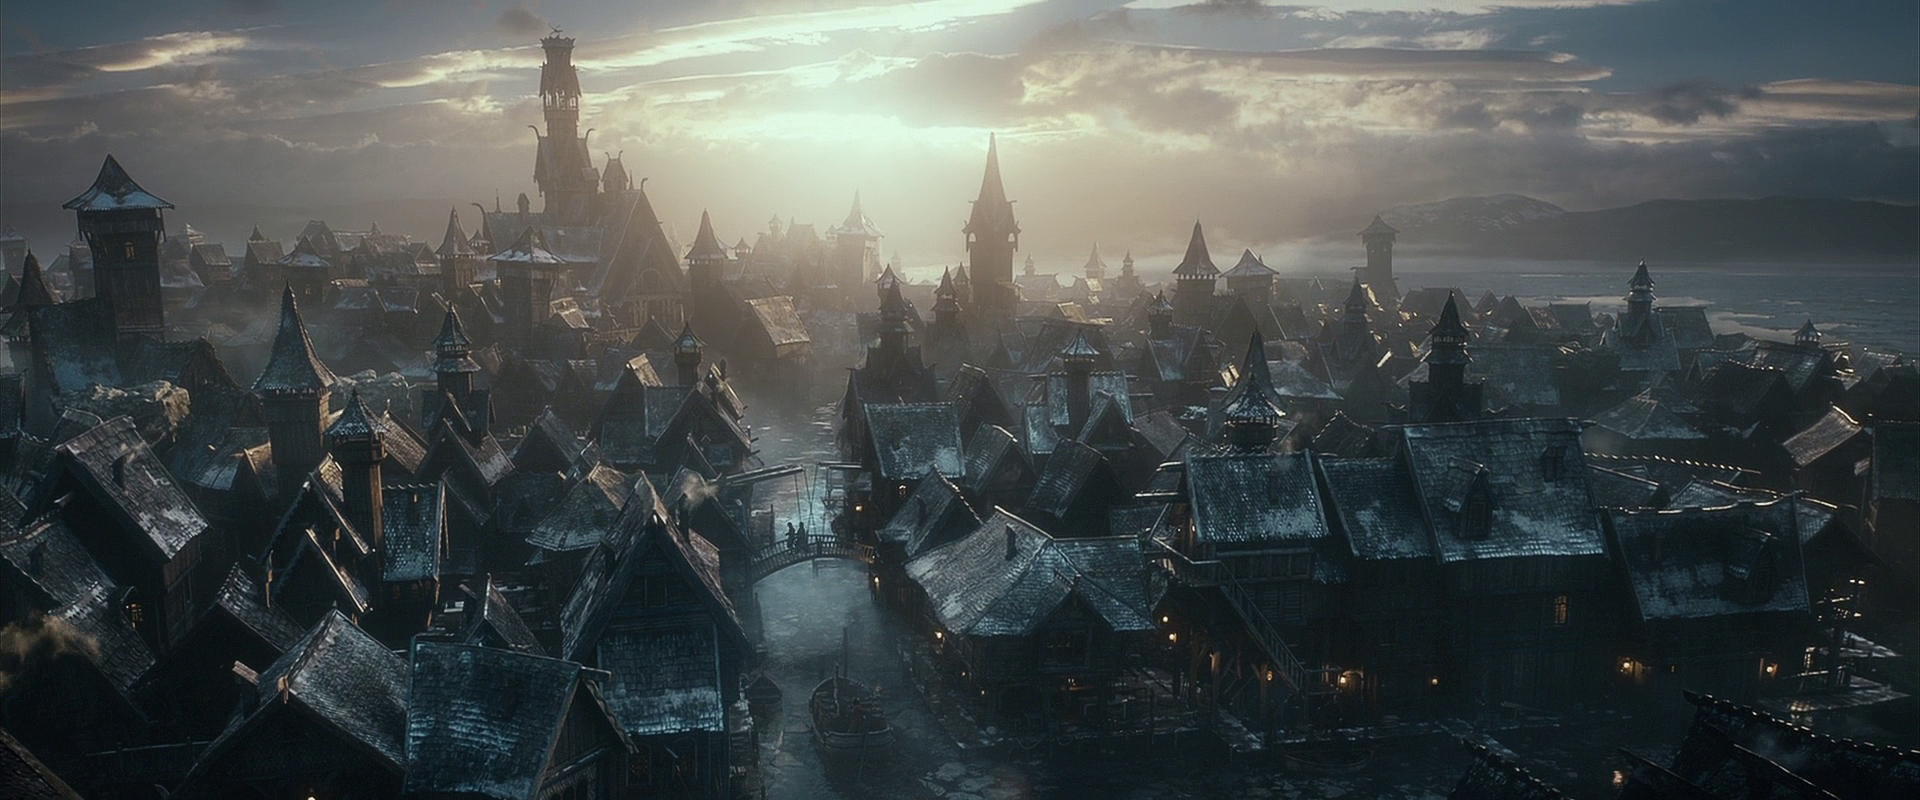 http://static4.wikia.nocookie.net/__cb20130706065621/lotr/images/a/ac/LakeTown.jpg